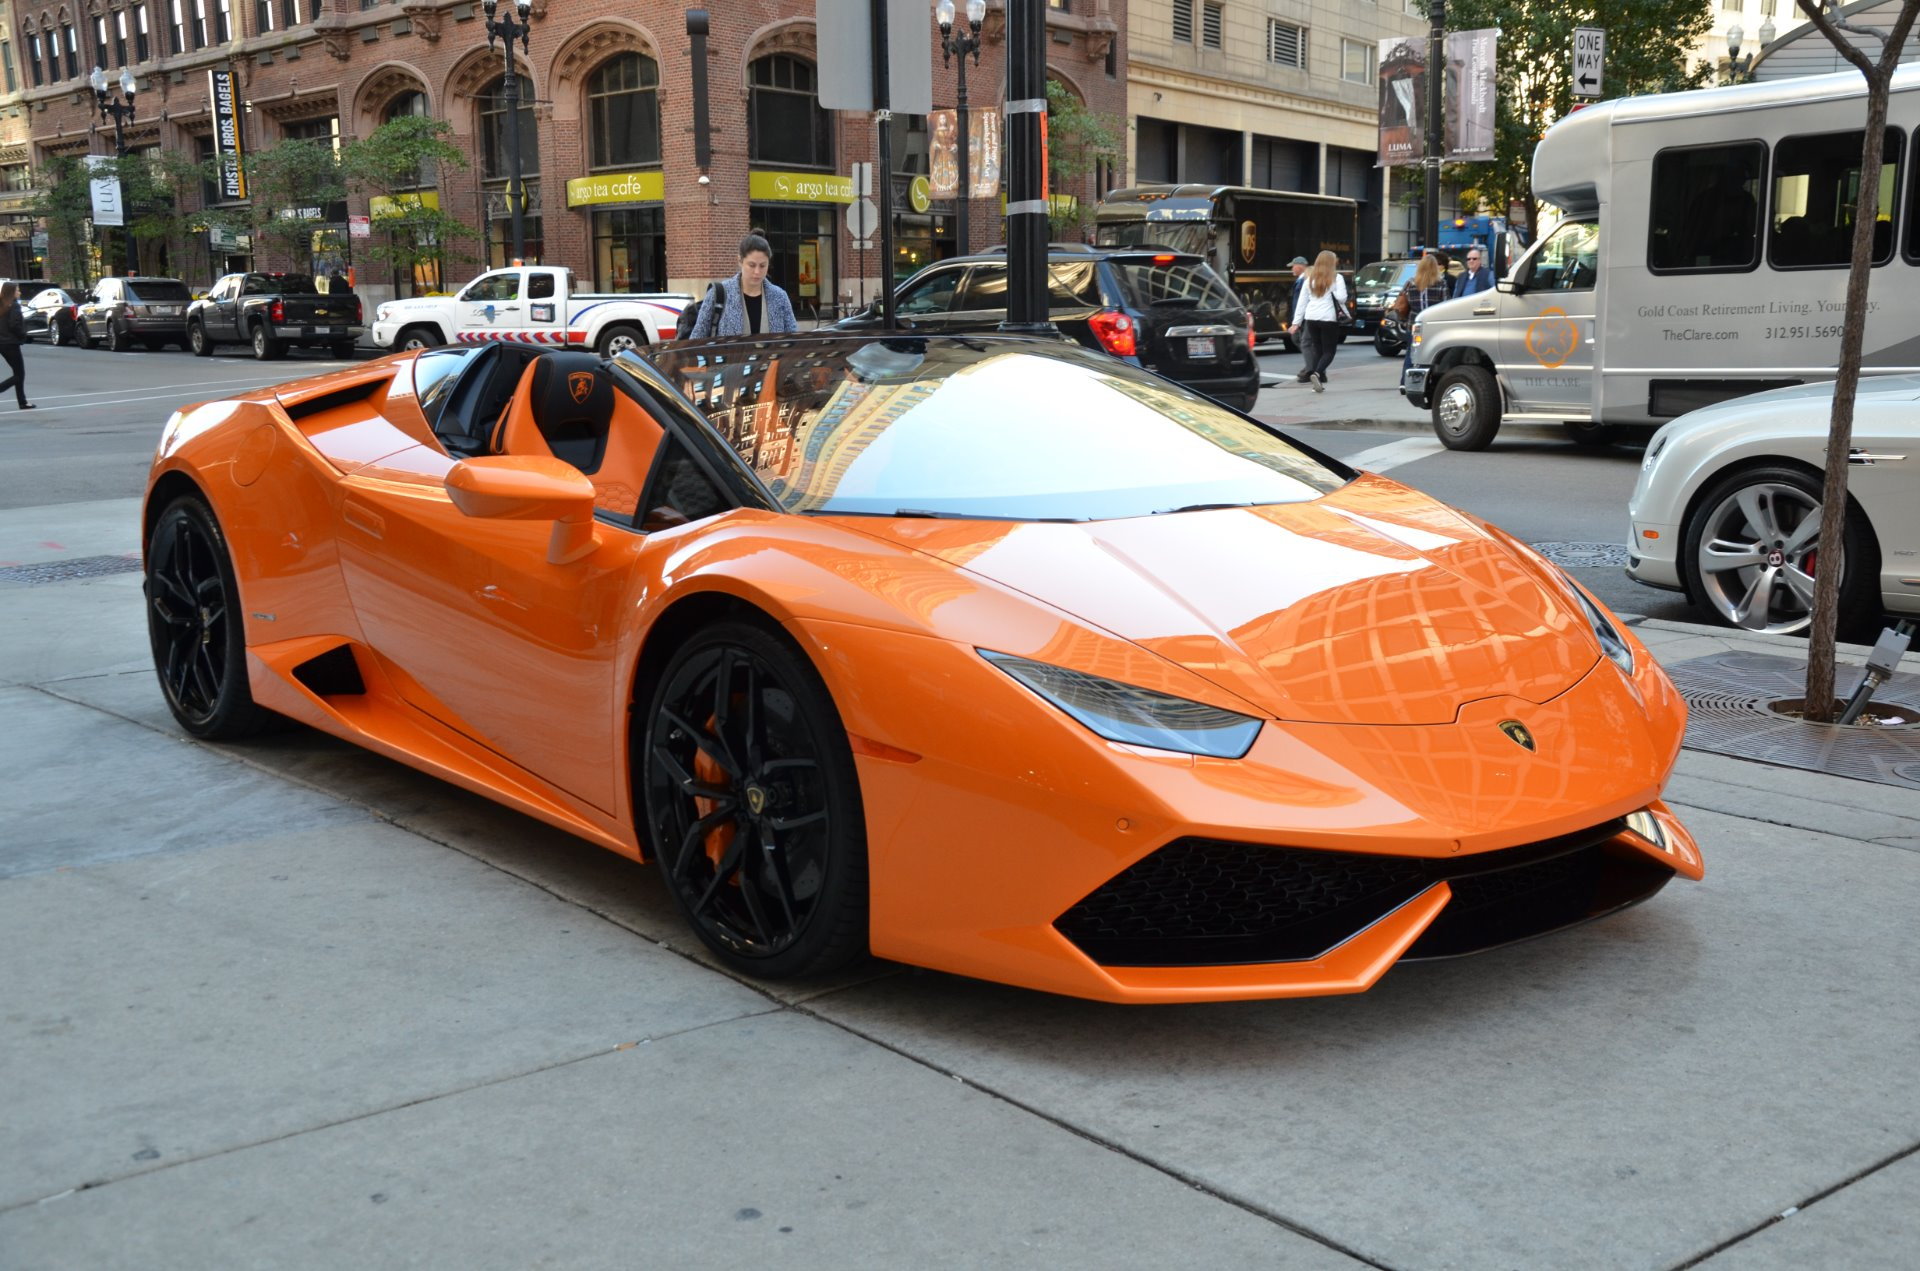 2017 lamborghini huracan spyder lp 610 4 spyder stock gc mir86 for sale near chicago il il. Black Bedroom Furniture Sets. Home Design Ideas